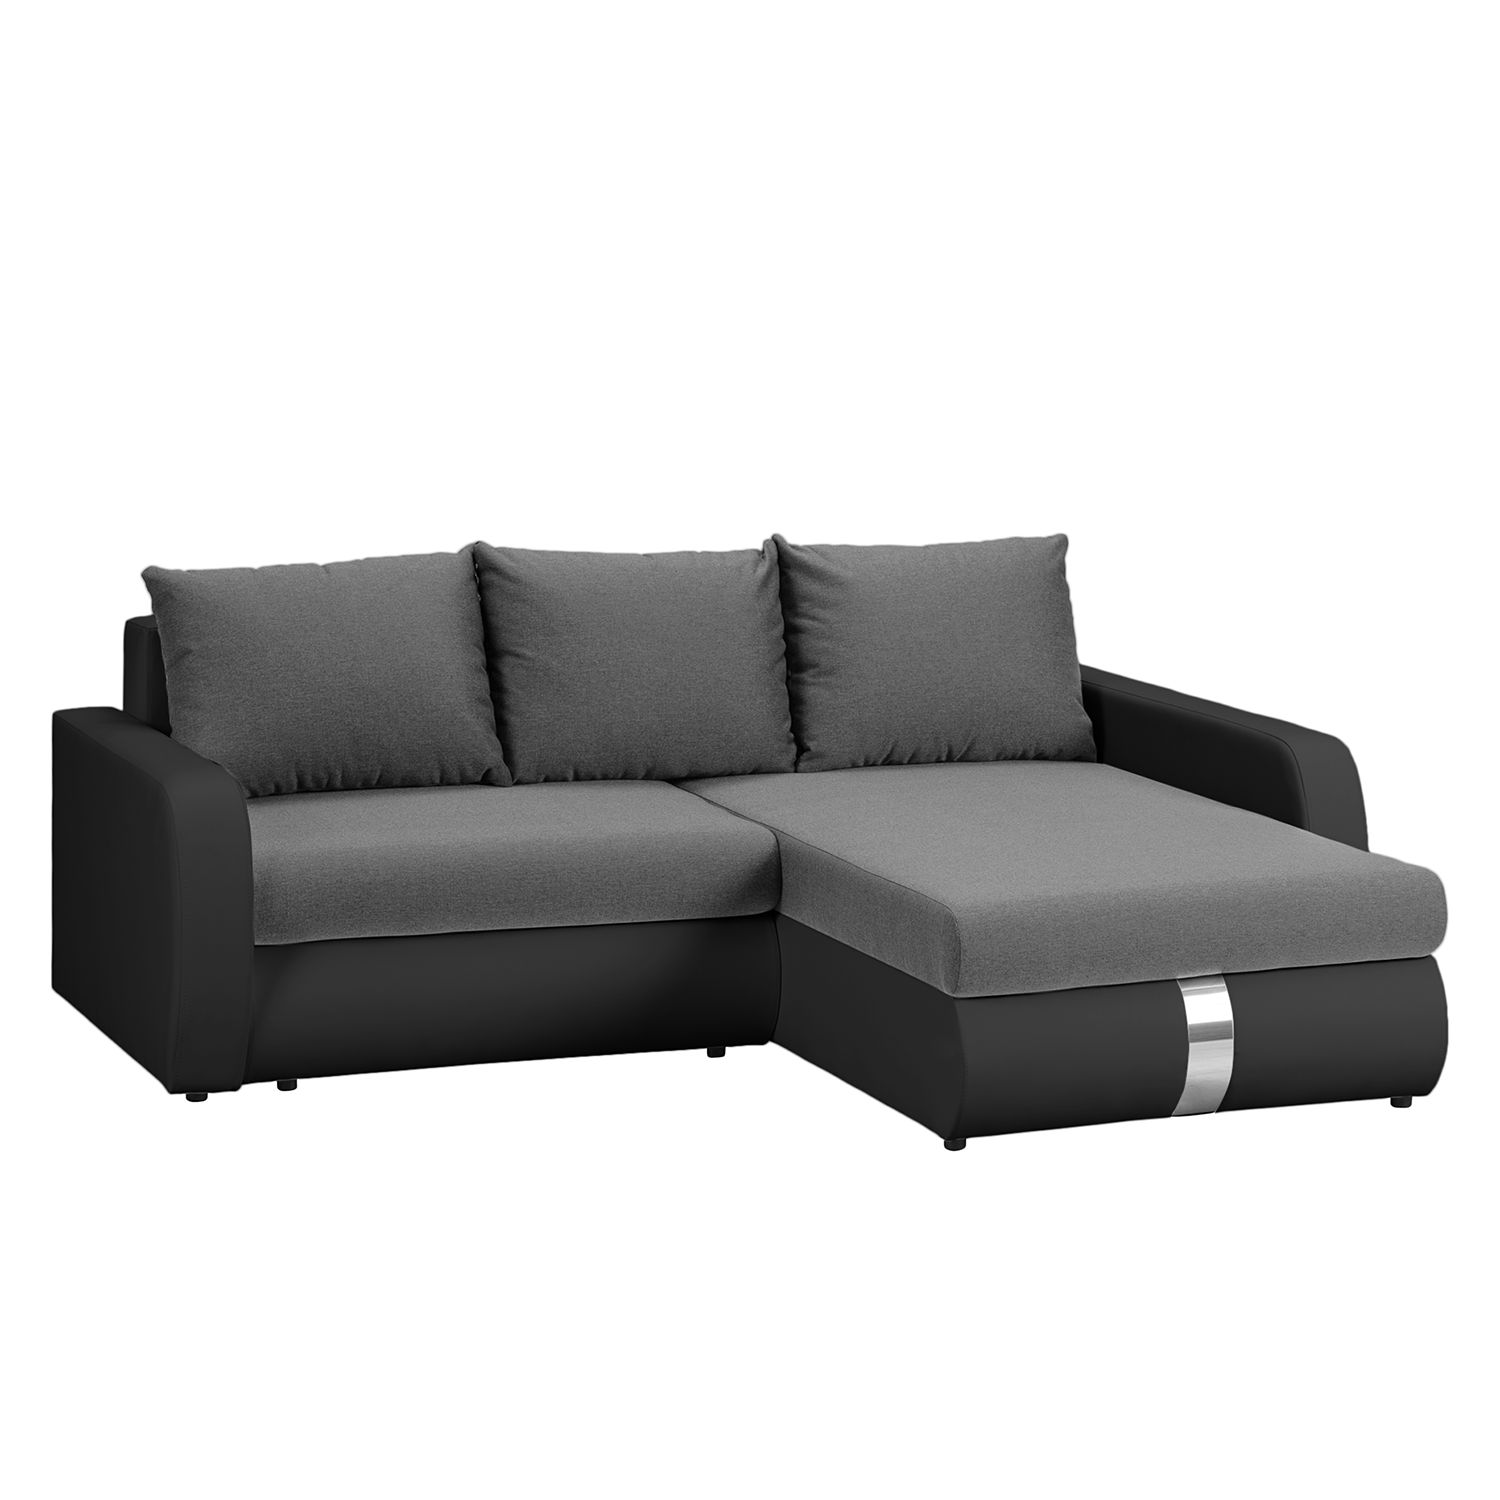 ecksofa mit schlaffunktion petrol. Black Bedroom Furniture Sets. Home Design Ideas